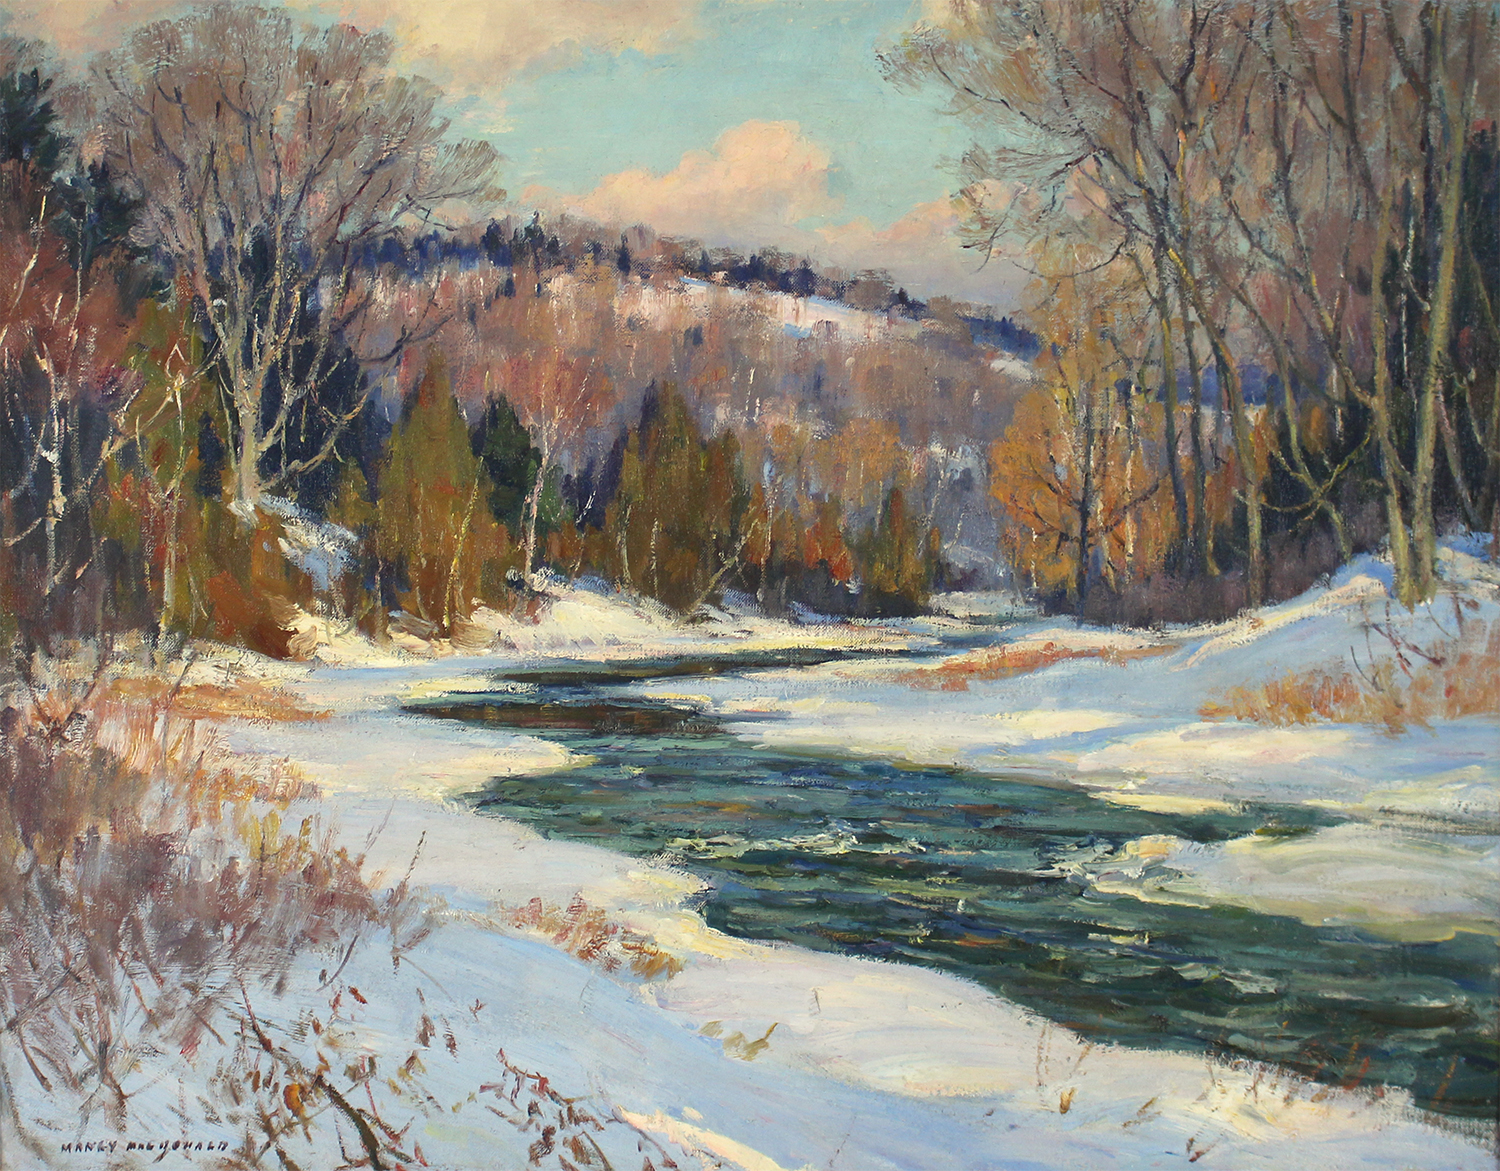 Historical Canadian painting by  Manly Macdonald (Canadian 1889-1971)   Winter Breakup on The Don